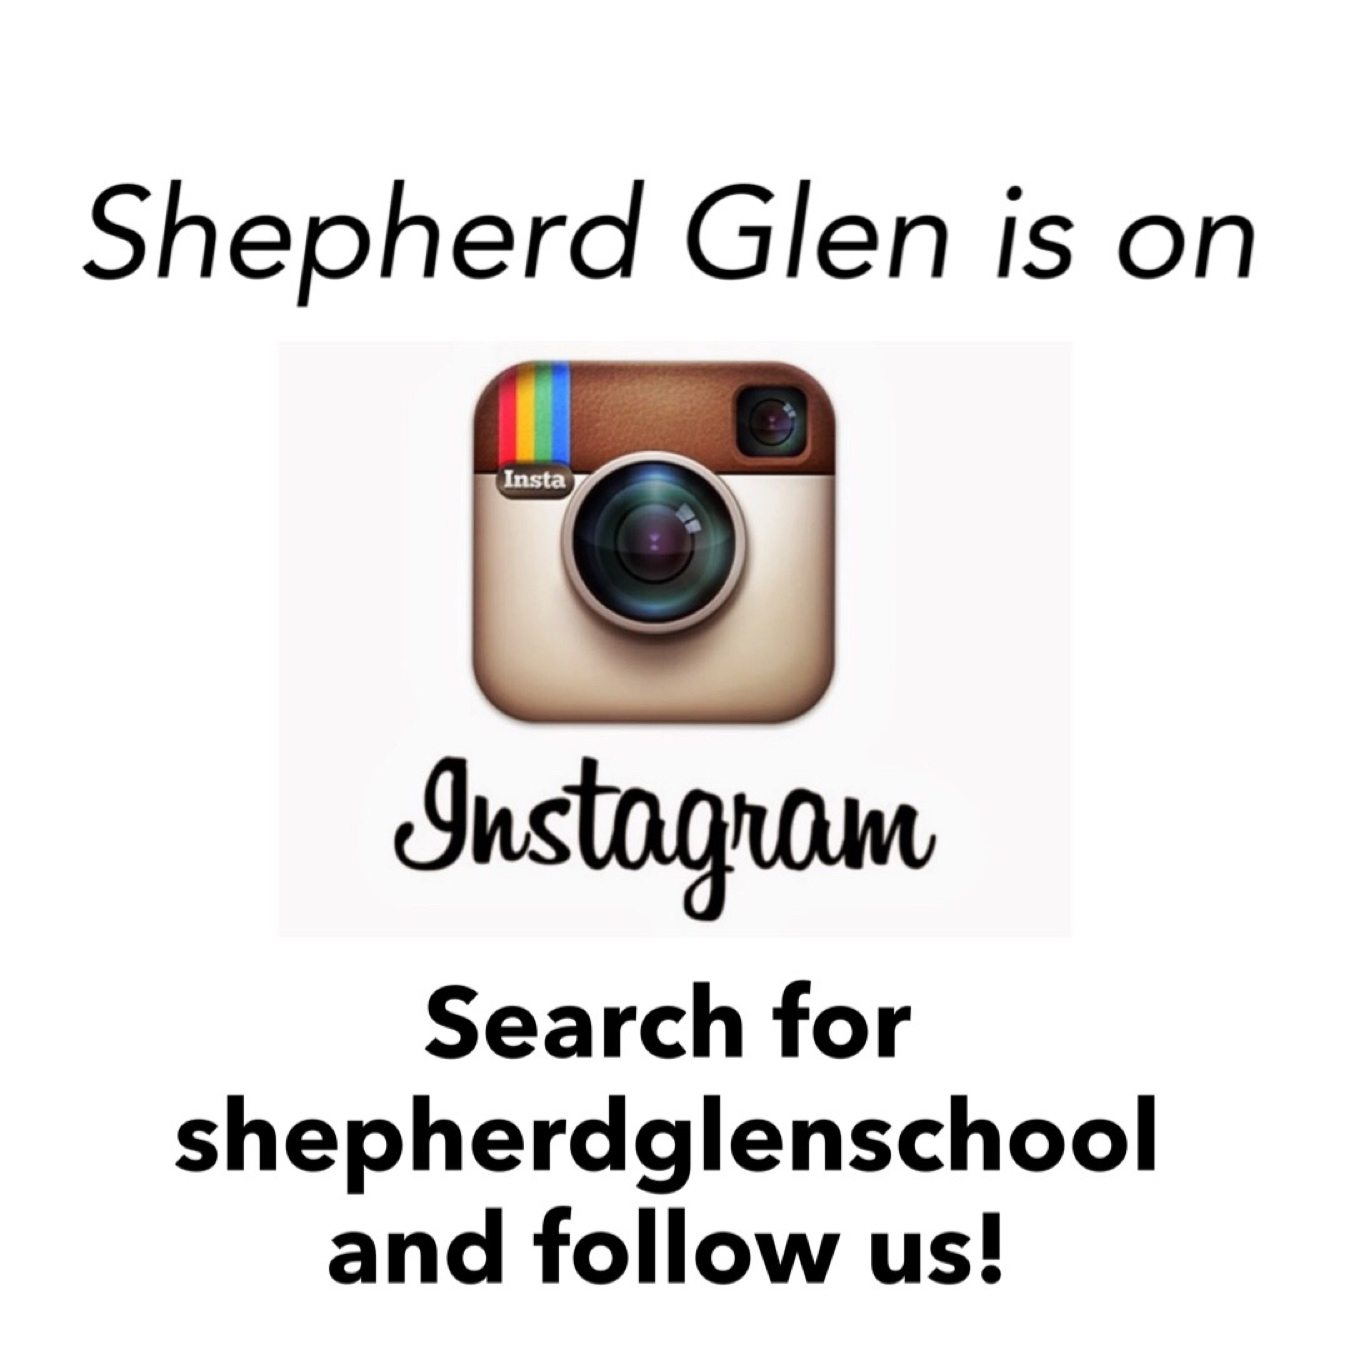 Shepherd Glen Instagram